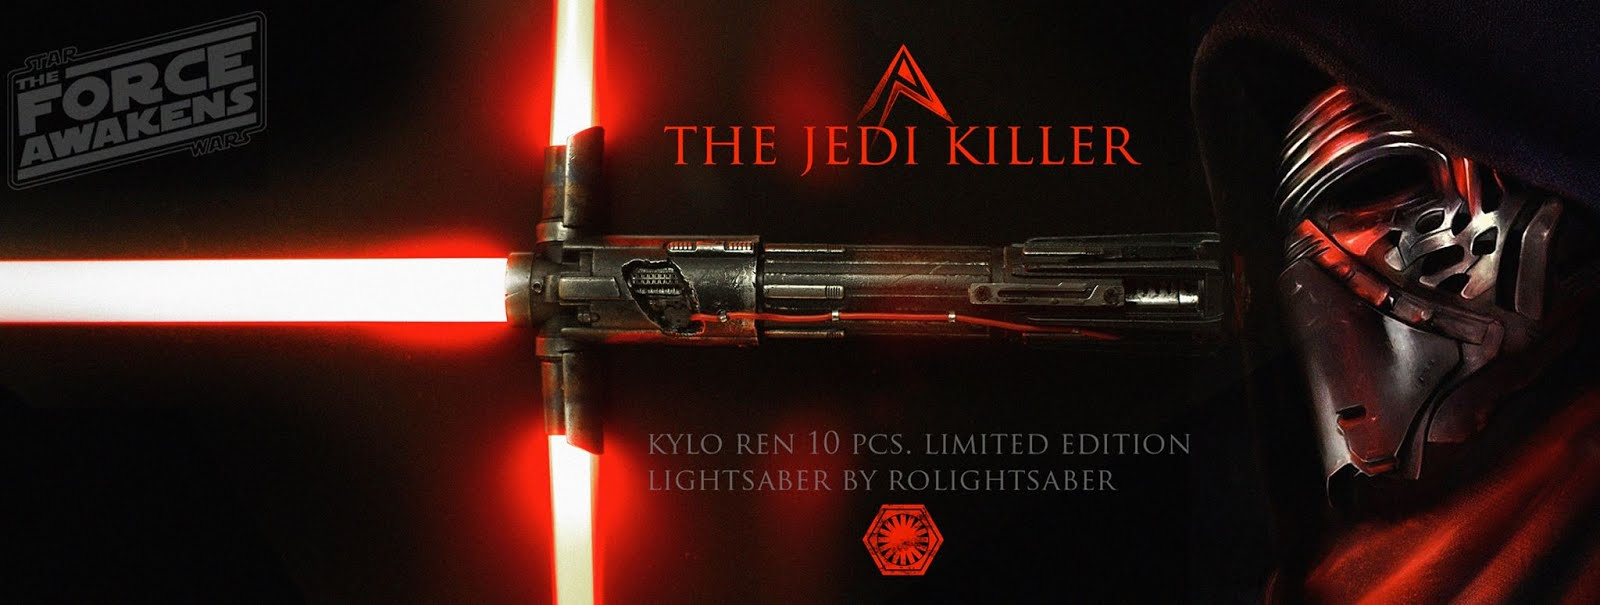 The Jedi Killer Kylo Ren Lightsaber